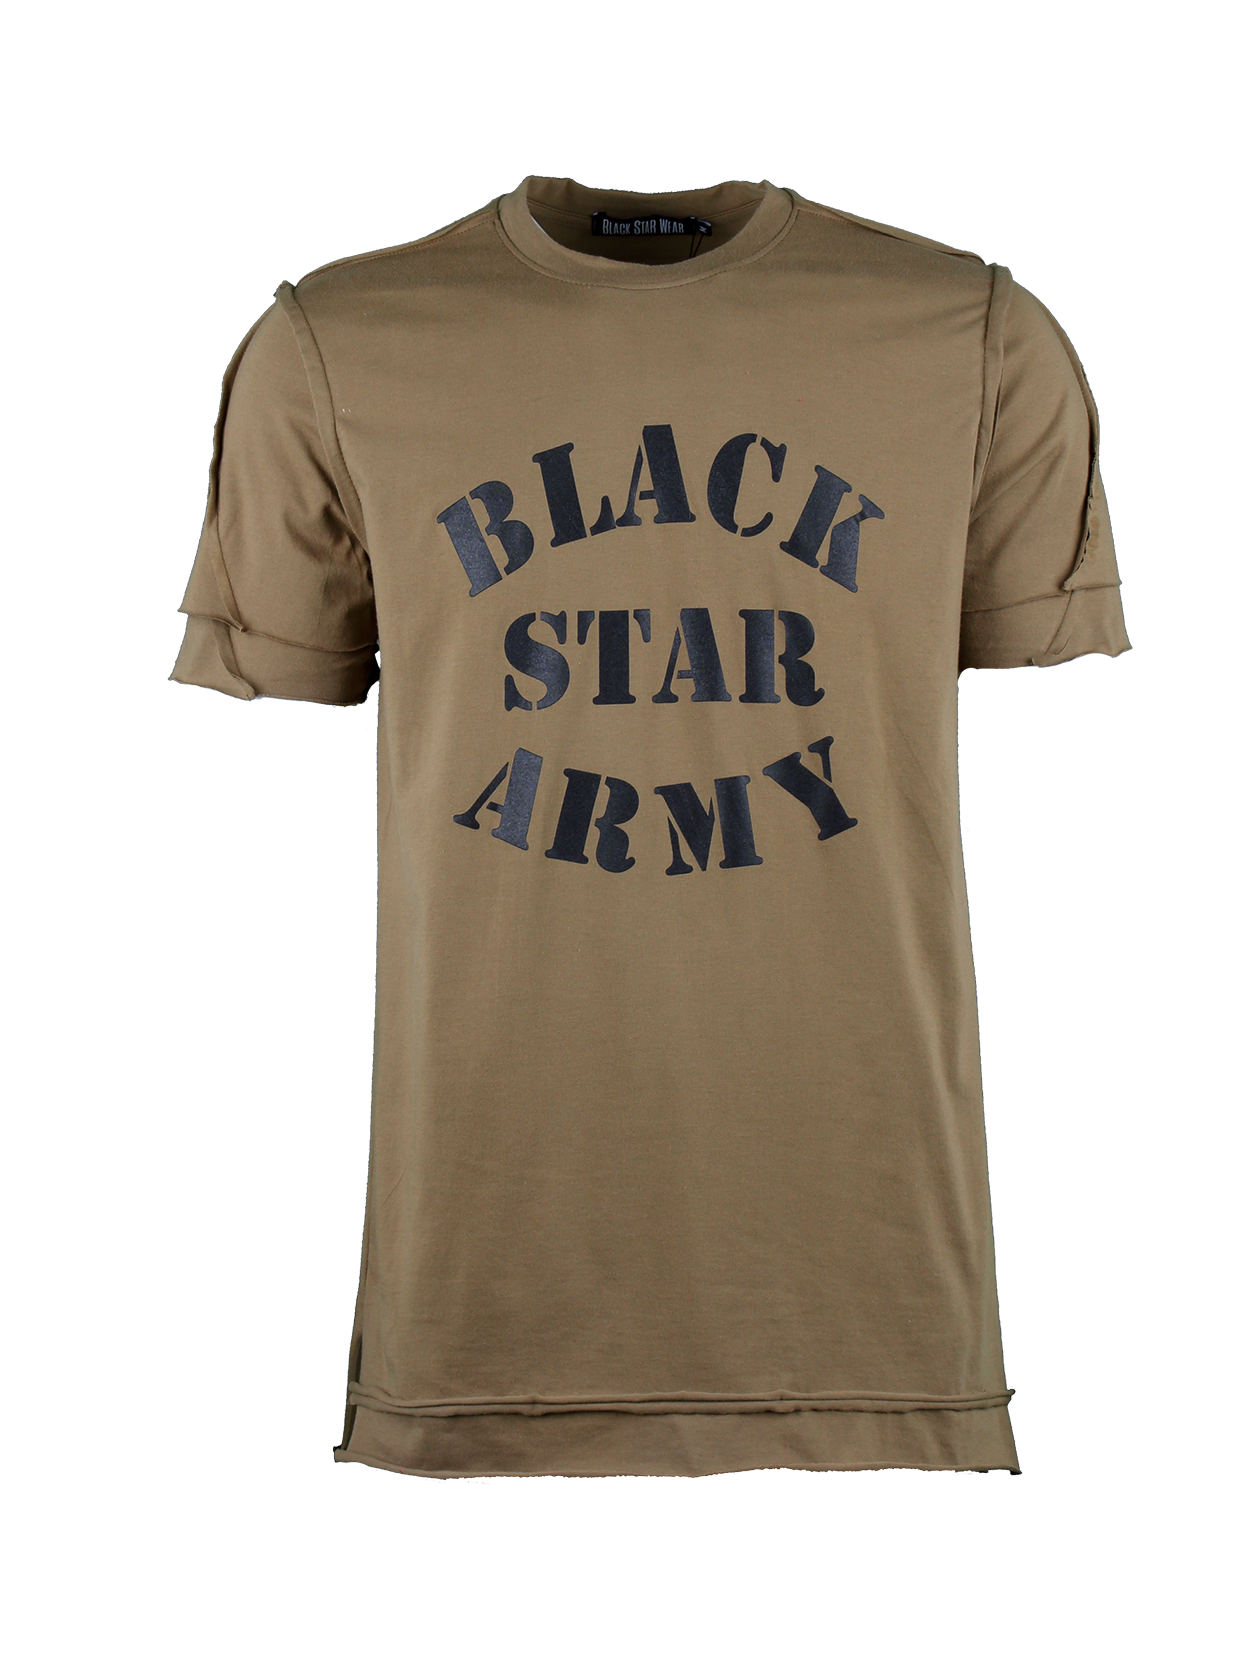 Mens t-shirt Black Star ArmyMens military style t-shirt by Black Star Wear. Longline cut, straight fit, natural cotton (95%) and lycra (5%) blend, o-neck, raw cut. Big black print Black Star Army on the chest. Avaliable in khaki.<br><br>size: L<br>color: Khaki<br>gender: male